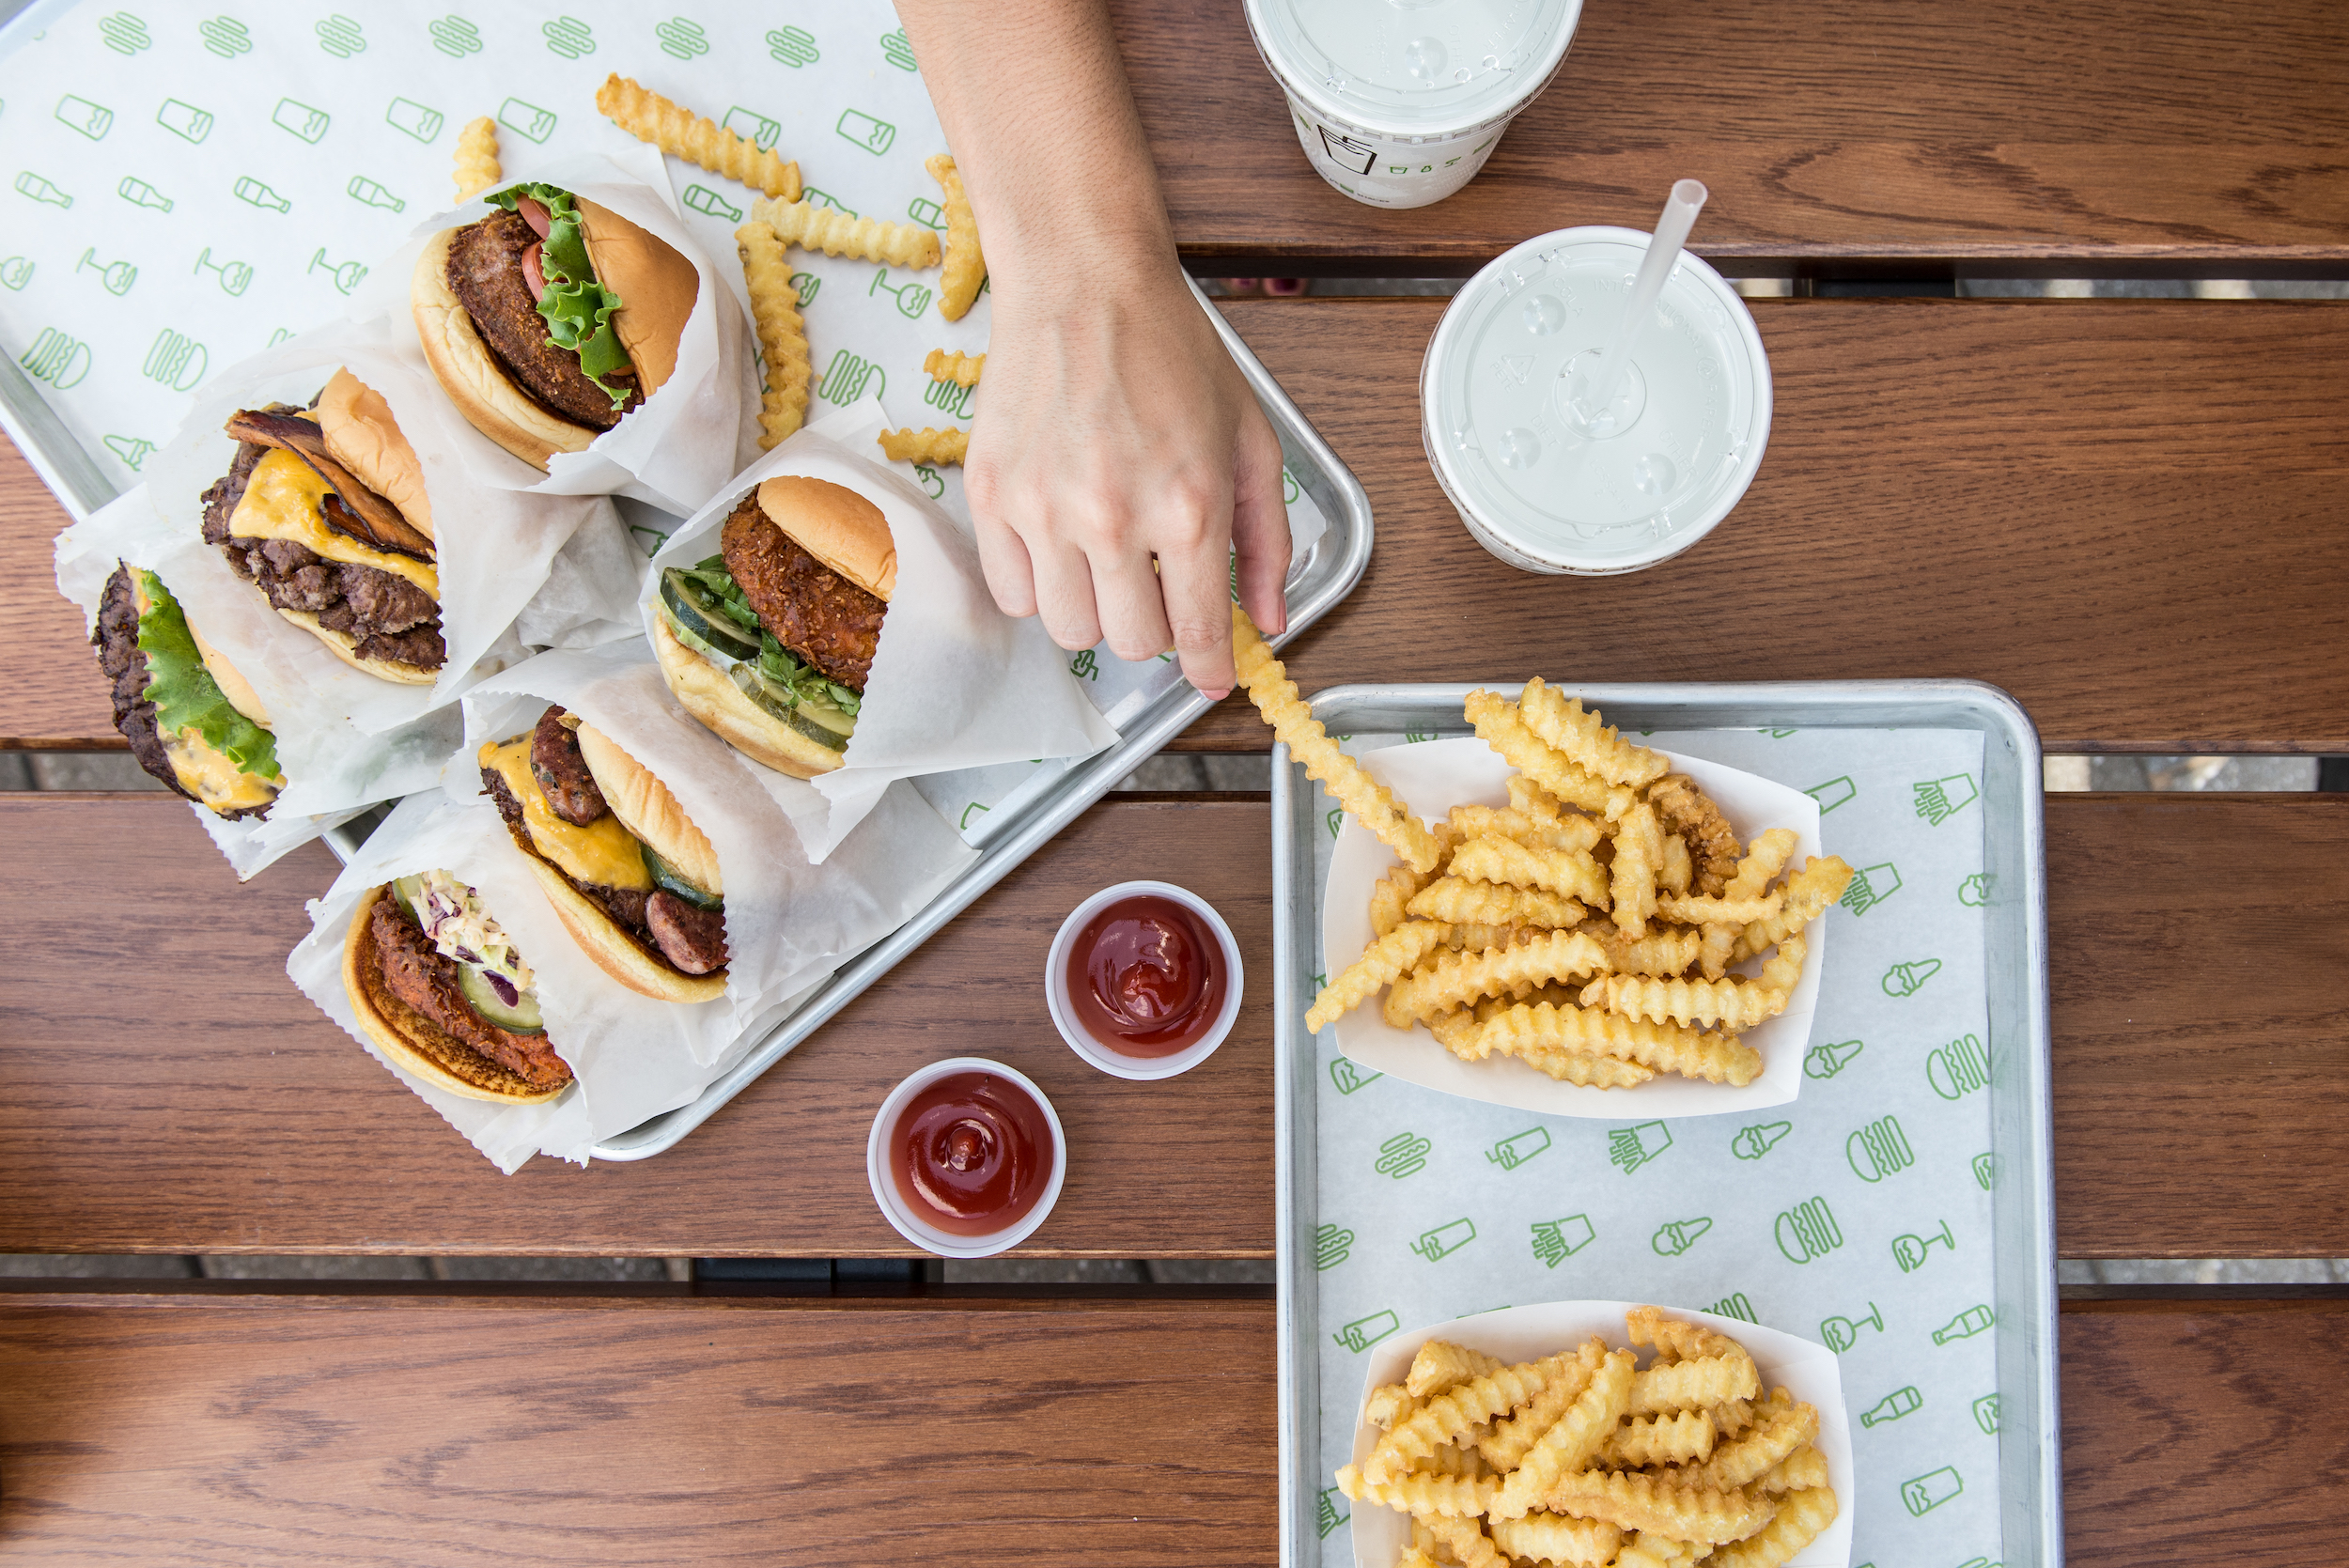 After putting down roots near Amazon HQ, burger chain Shake